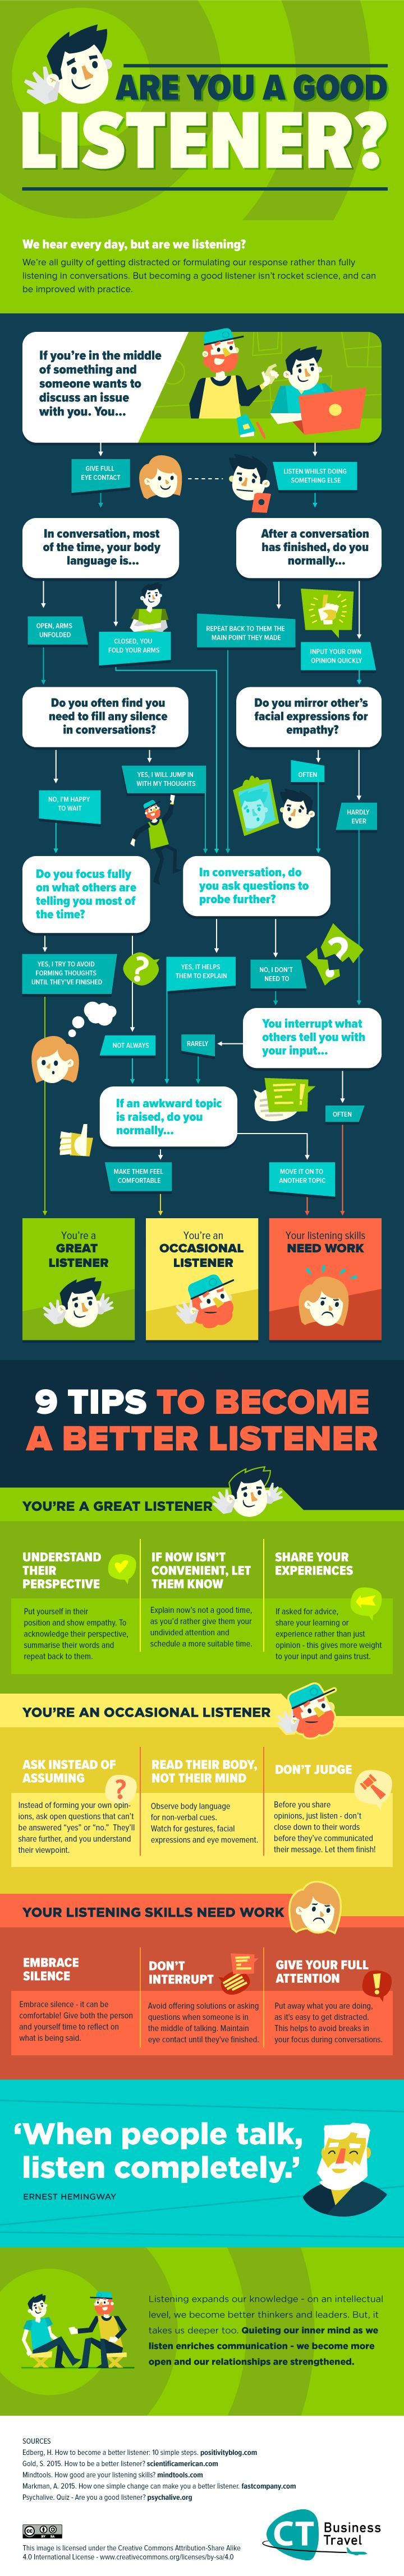 We'd all like to think that we're good listeners, but it can be more difficult than it seems to actually be good at it.